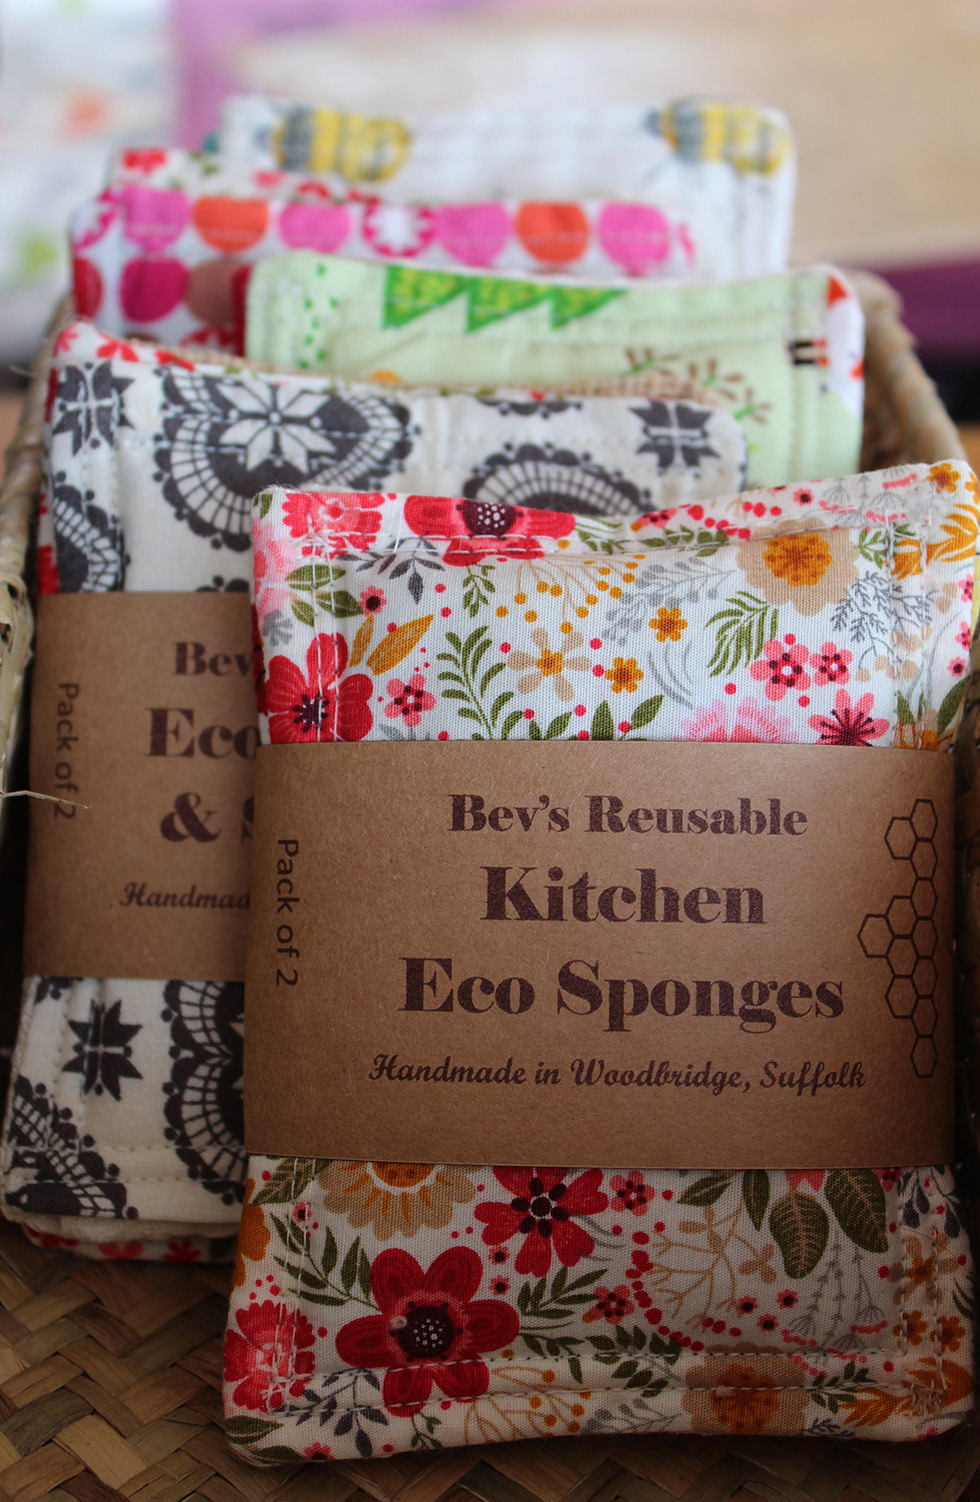 Eco Kitchen Sponges by Bev's Eco Products